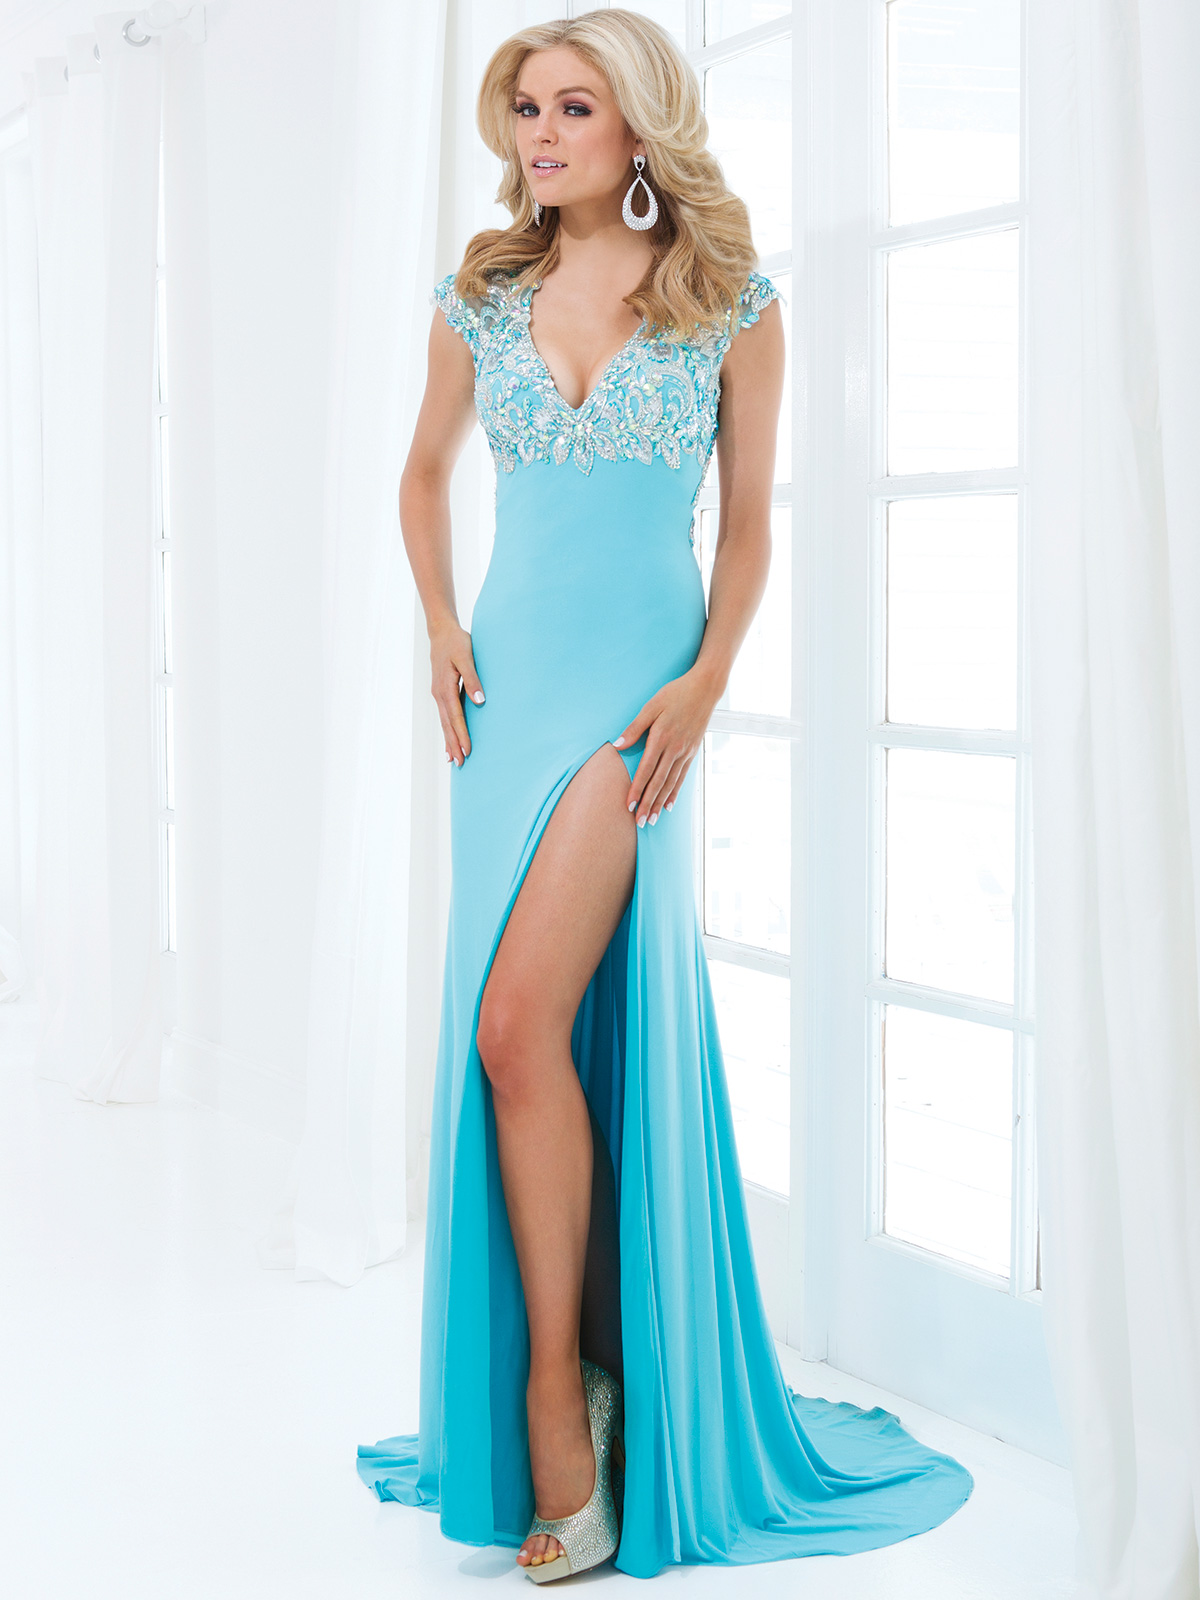 Prom Dresses Archives - Page 144 of 515 - Holiday Dresses